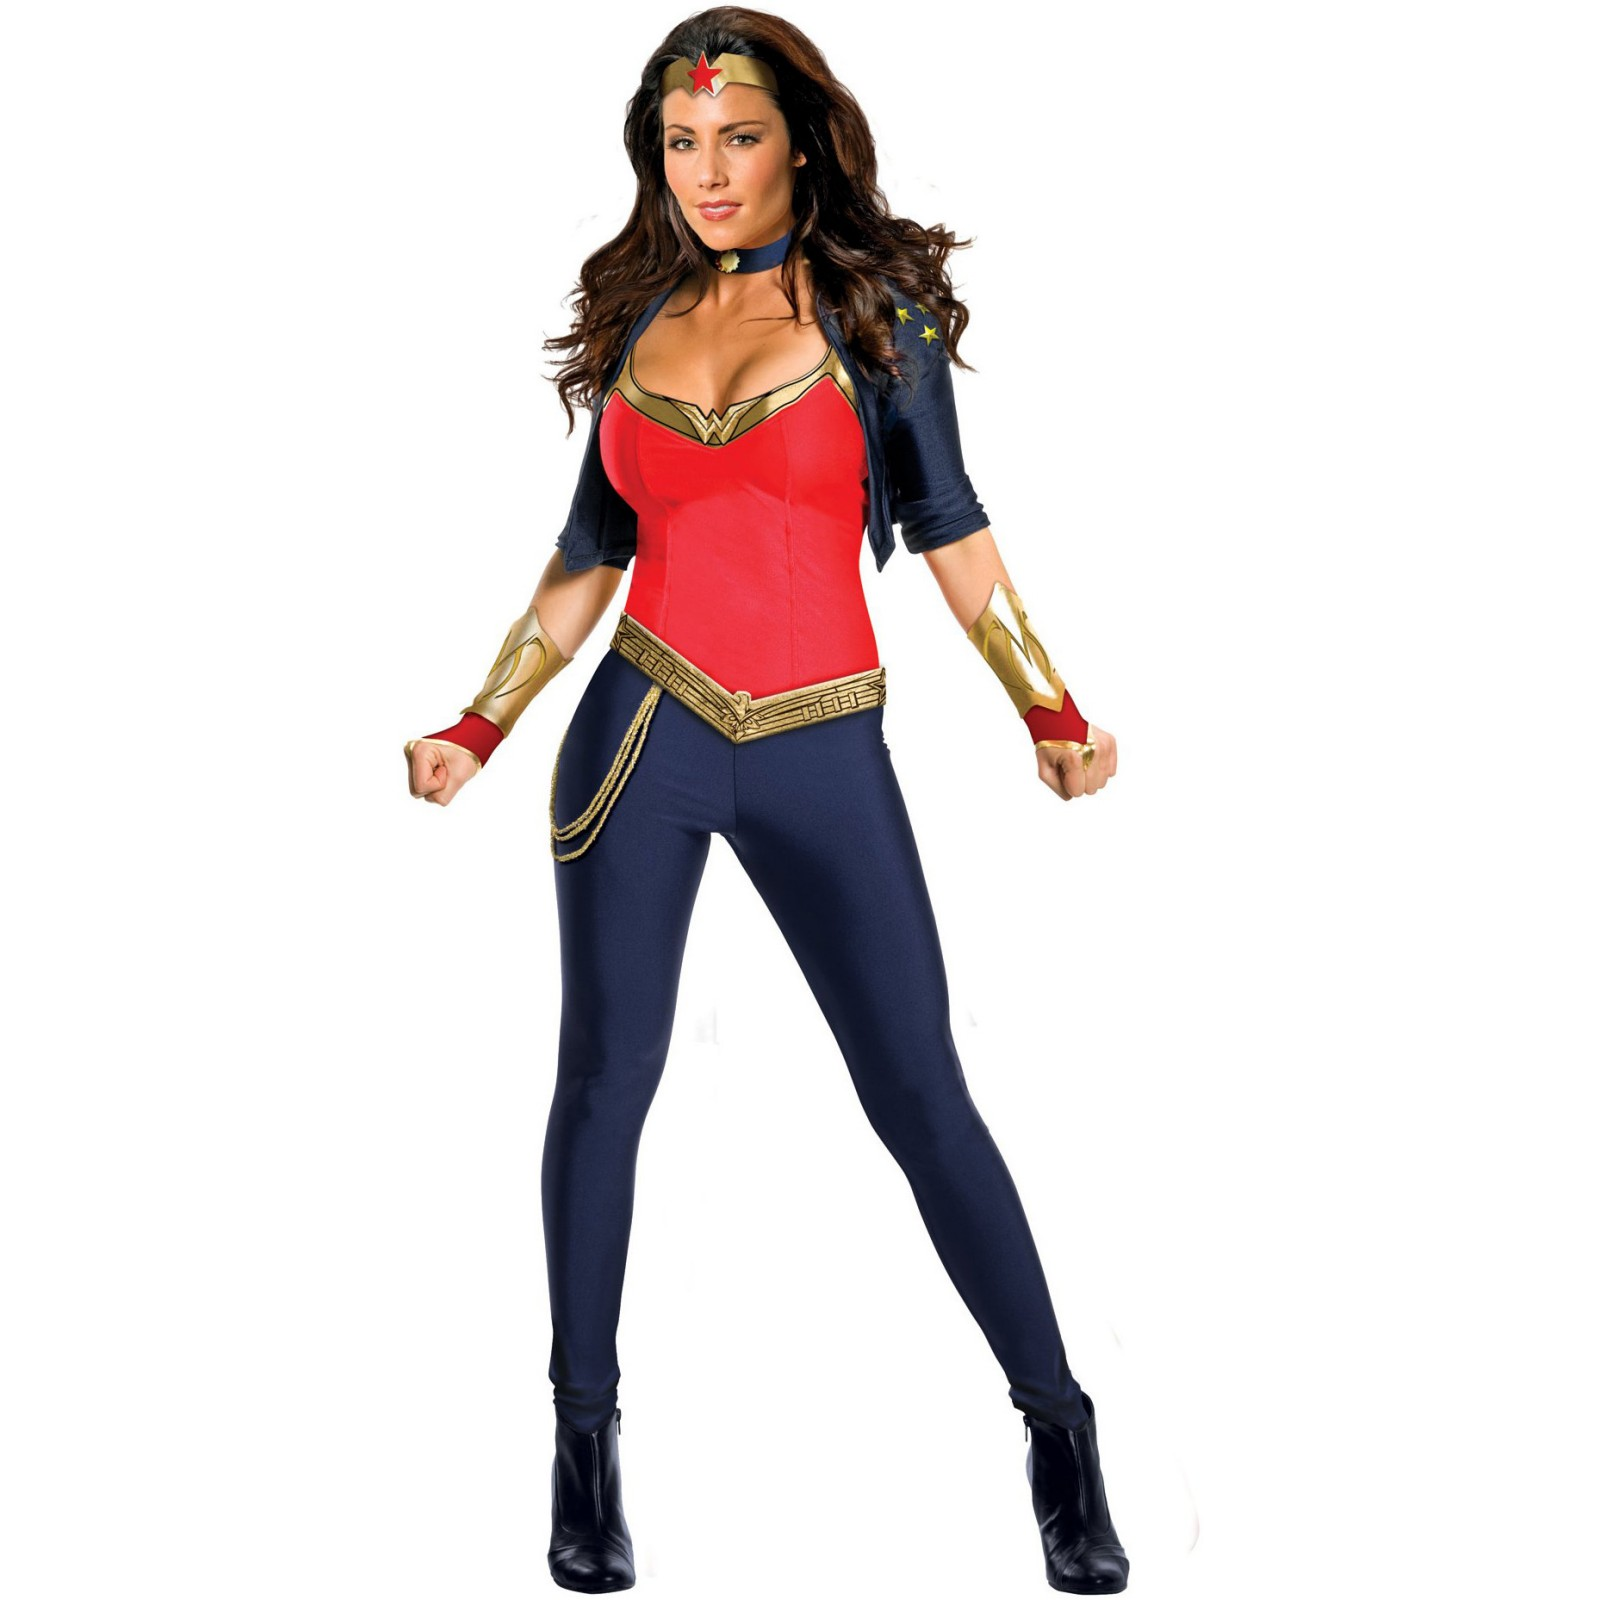 Saturday Morning Toyz: New Wonder Woman for 2011